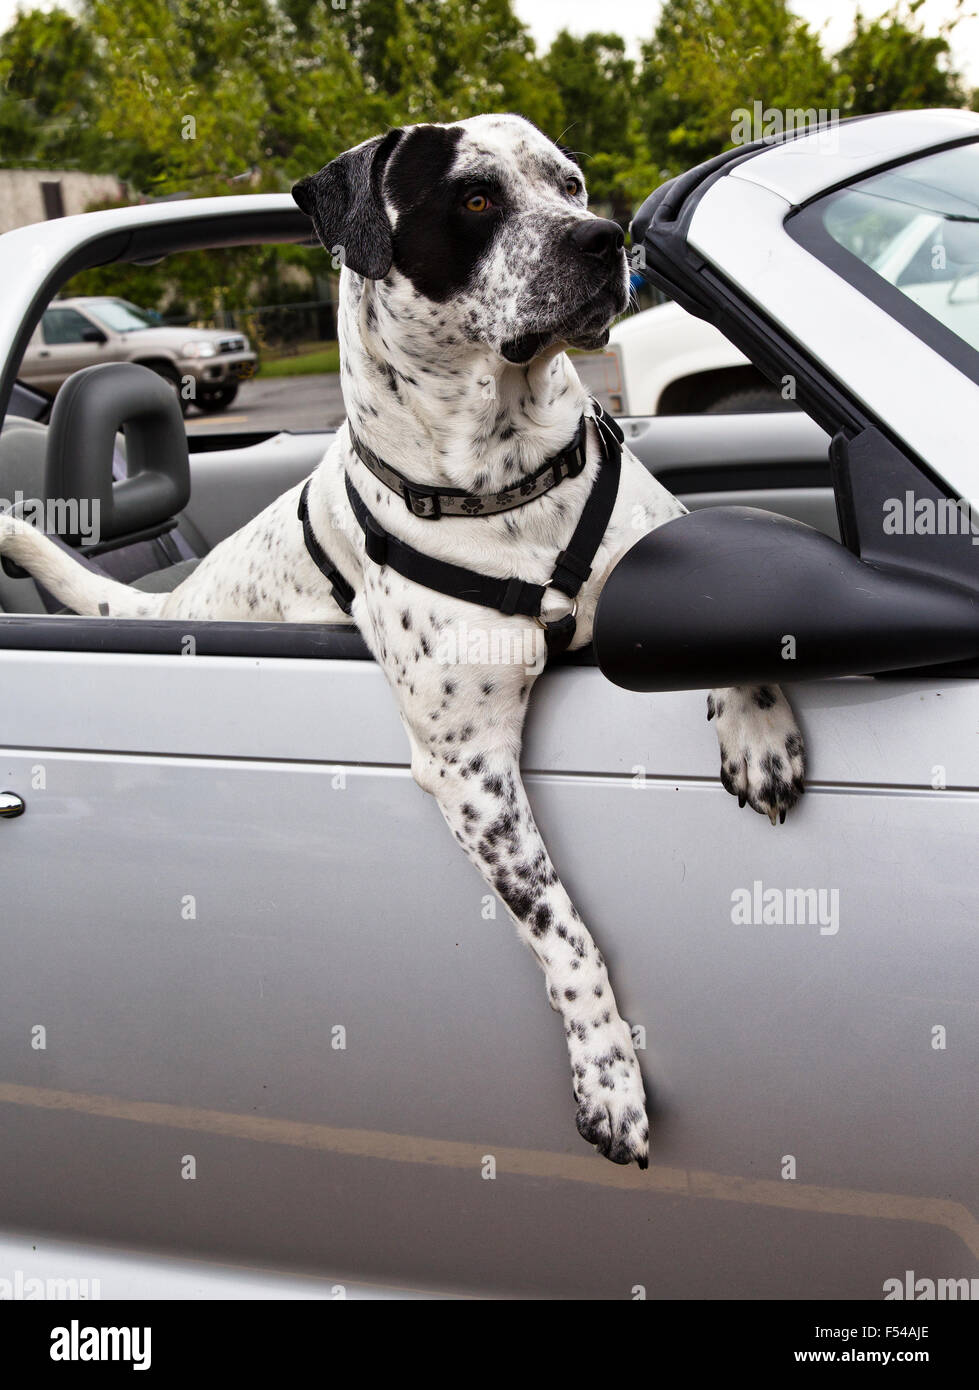 American Bulldog crossed with German Short-haired Pointer out for a ride. - Stock Image